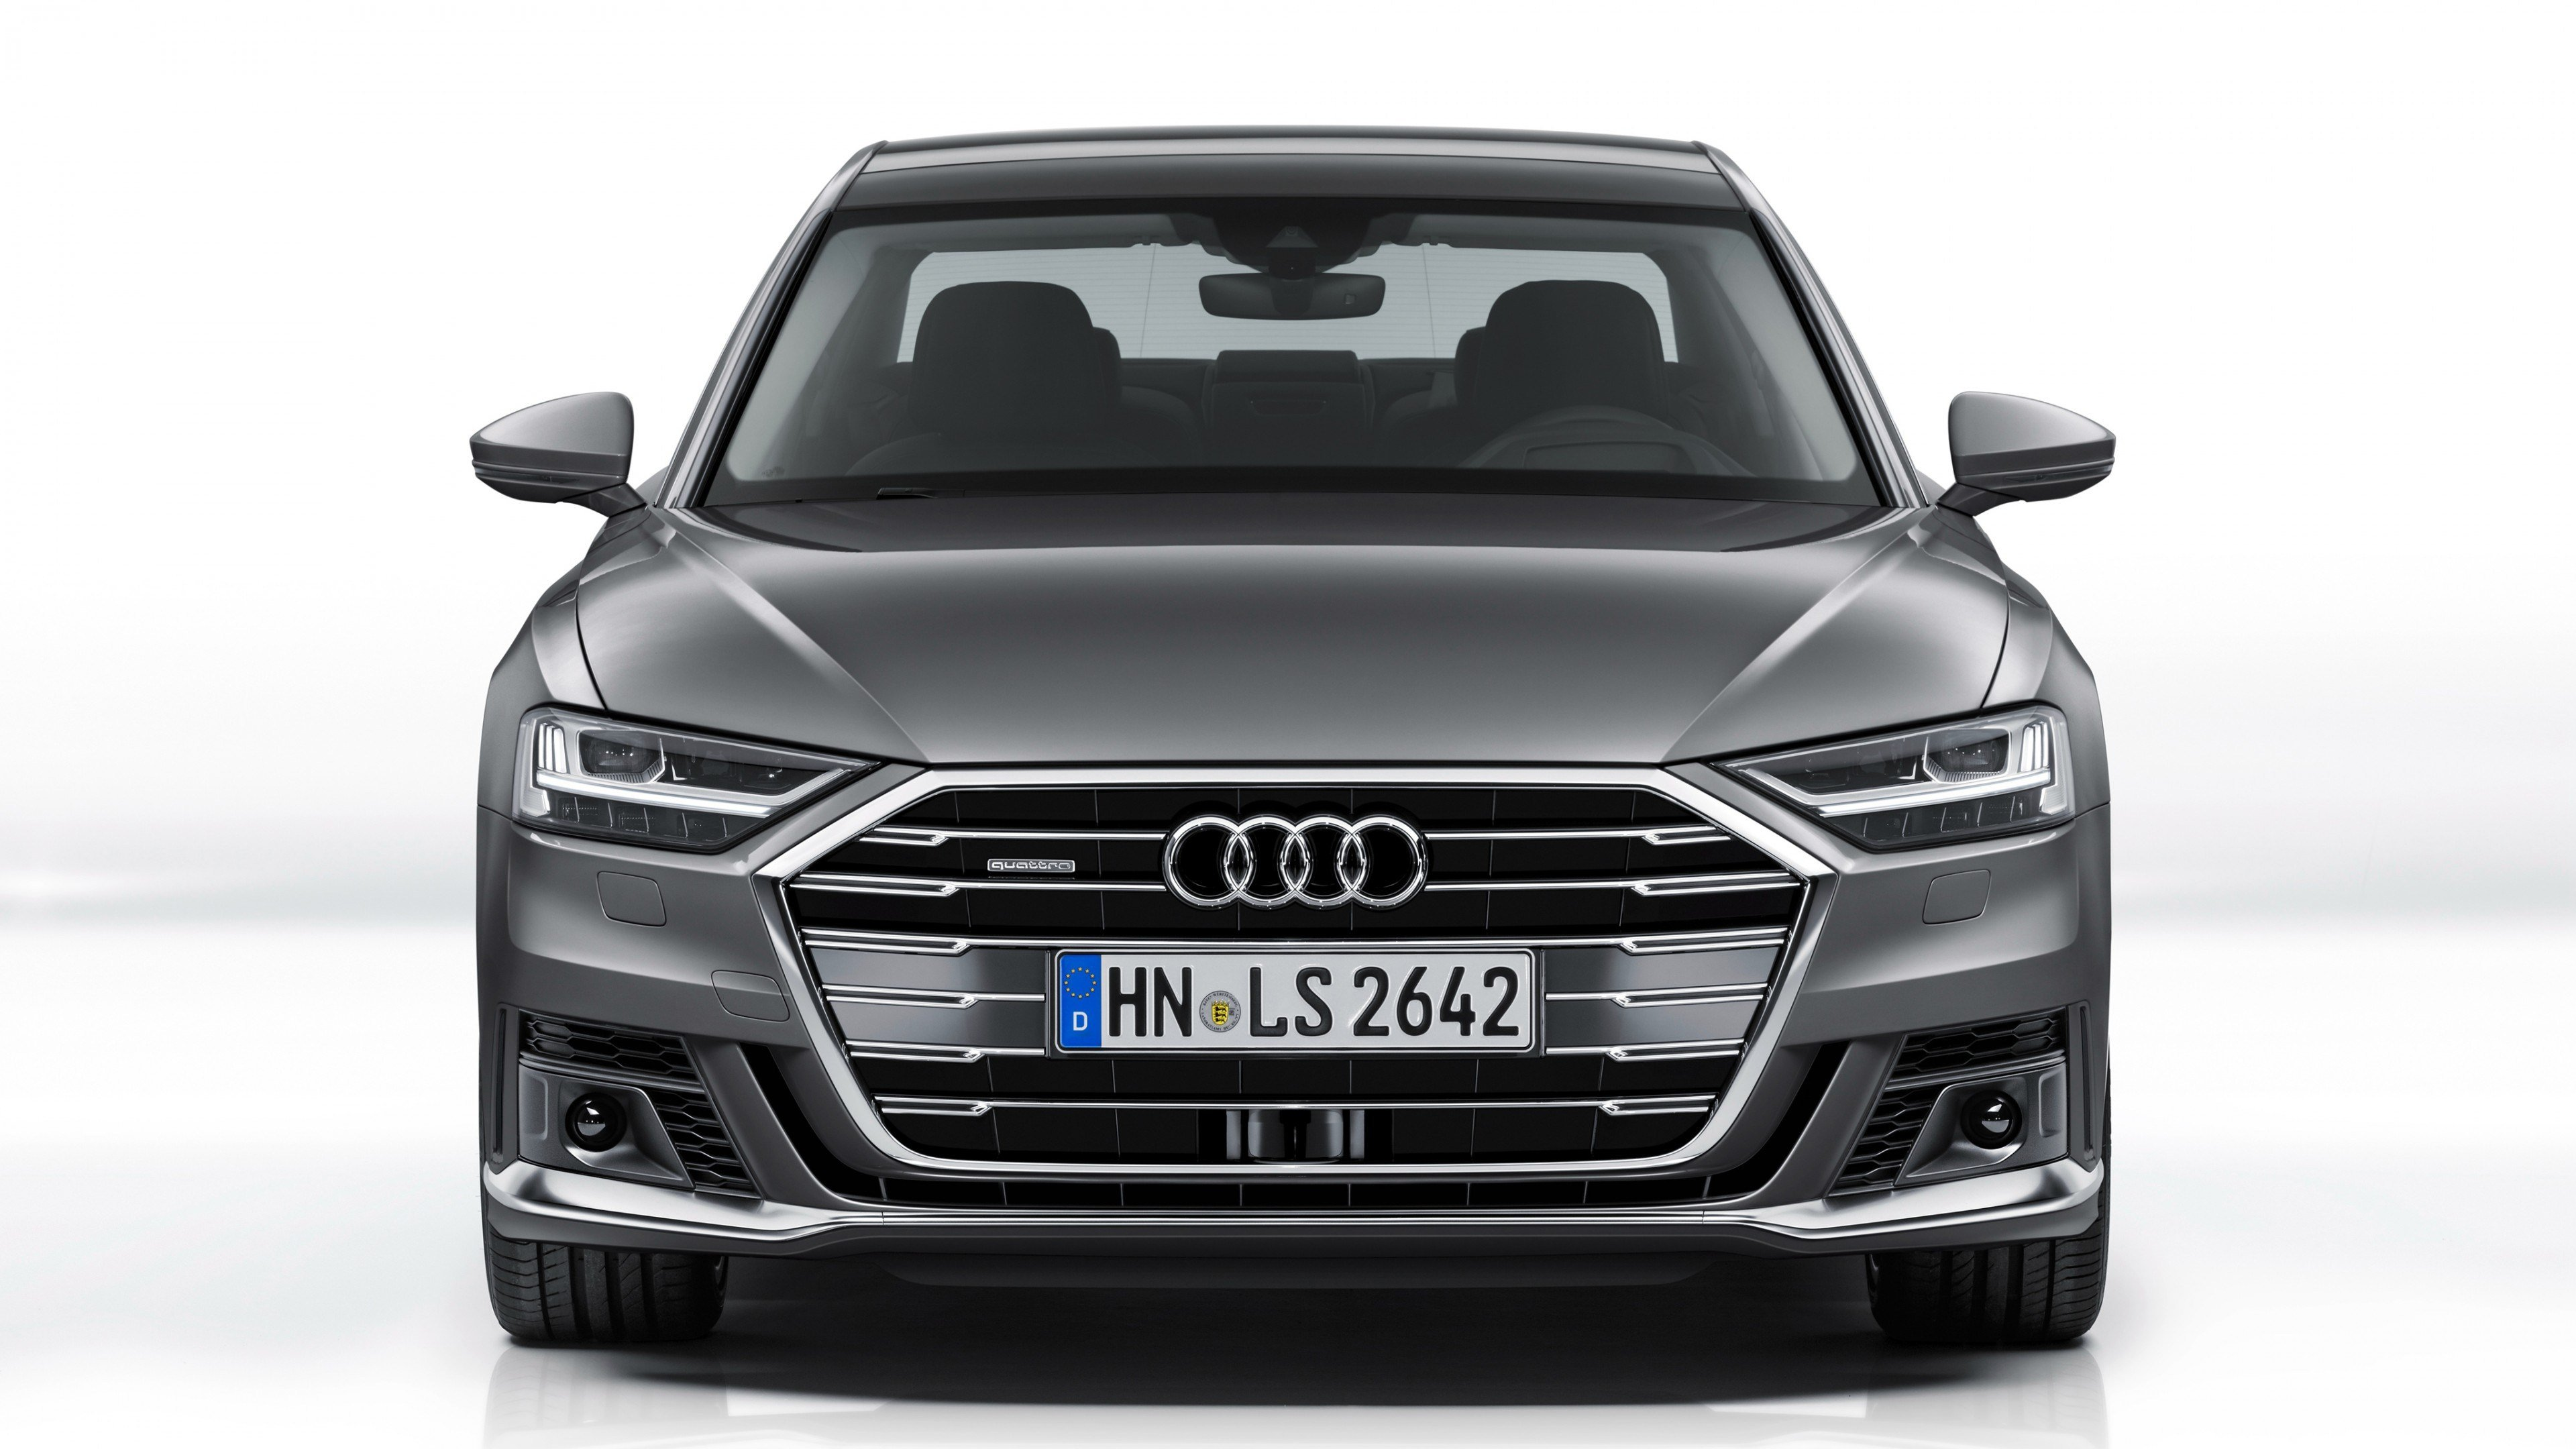 Latest 2018 Audi A8 Sport Exterior Package 4K Wallpaper Hd Car Free Download